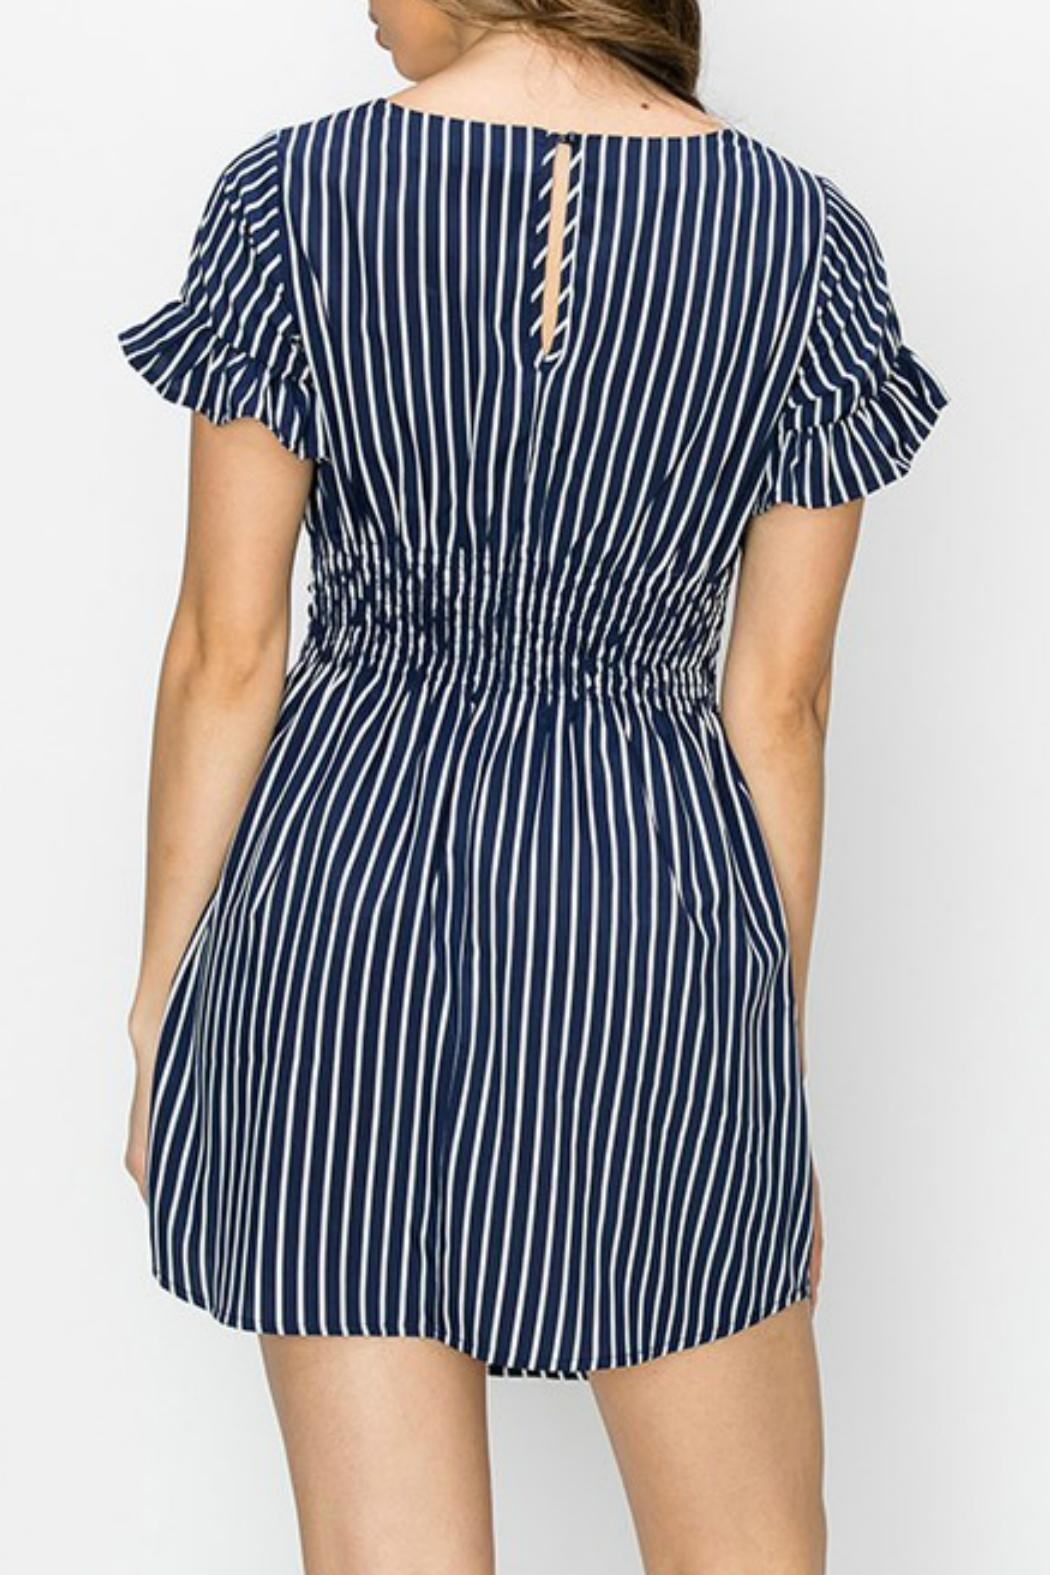 ALB Anchorage Stripe Ruffle-Sleeve Dress - Front Full Image